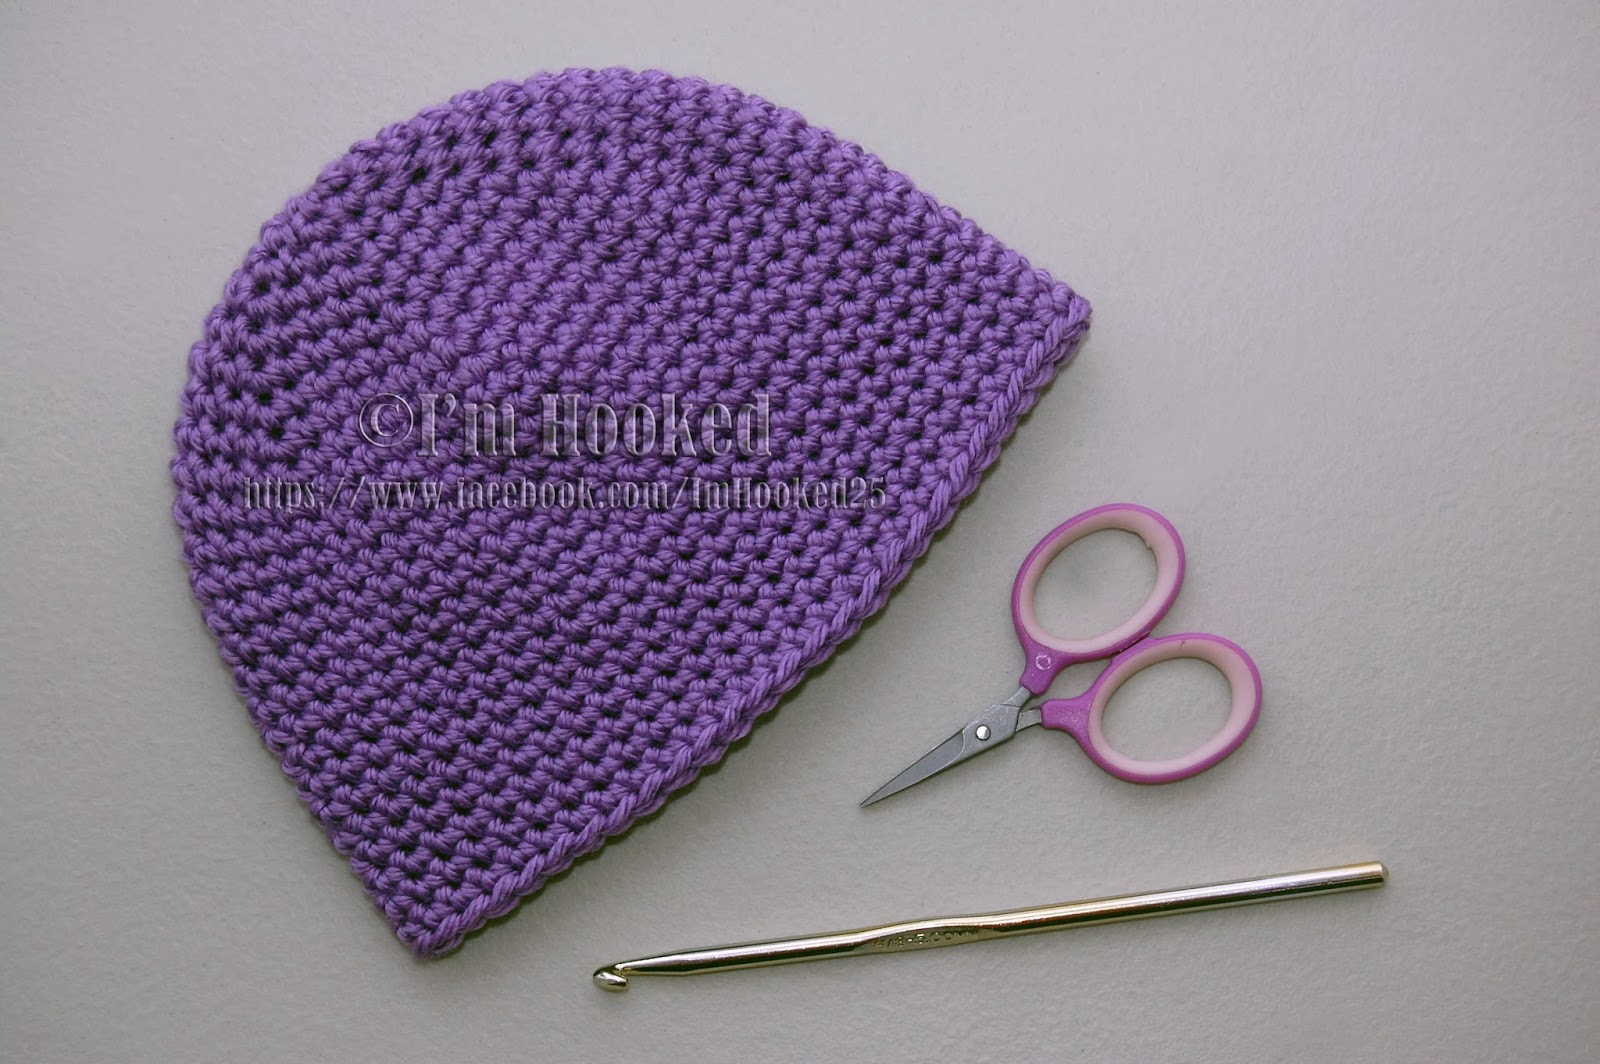 Free Crochet Pattern: Basic Beanie (Single Crochet)